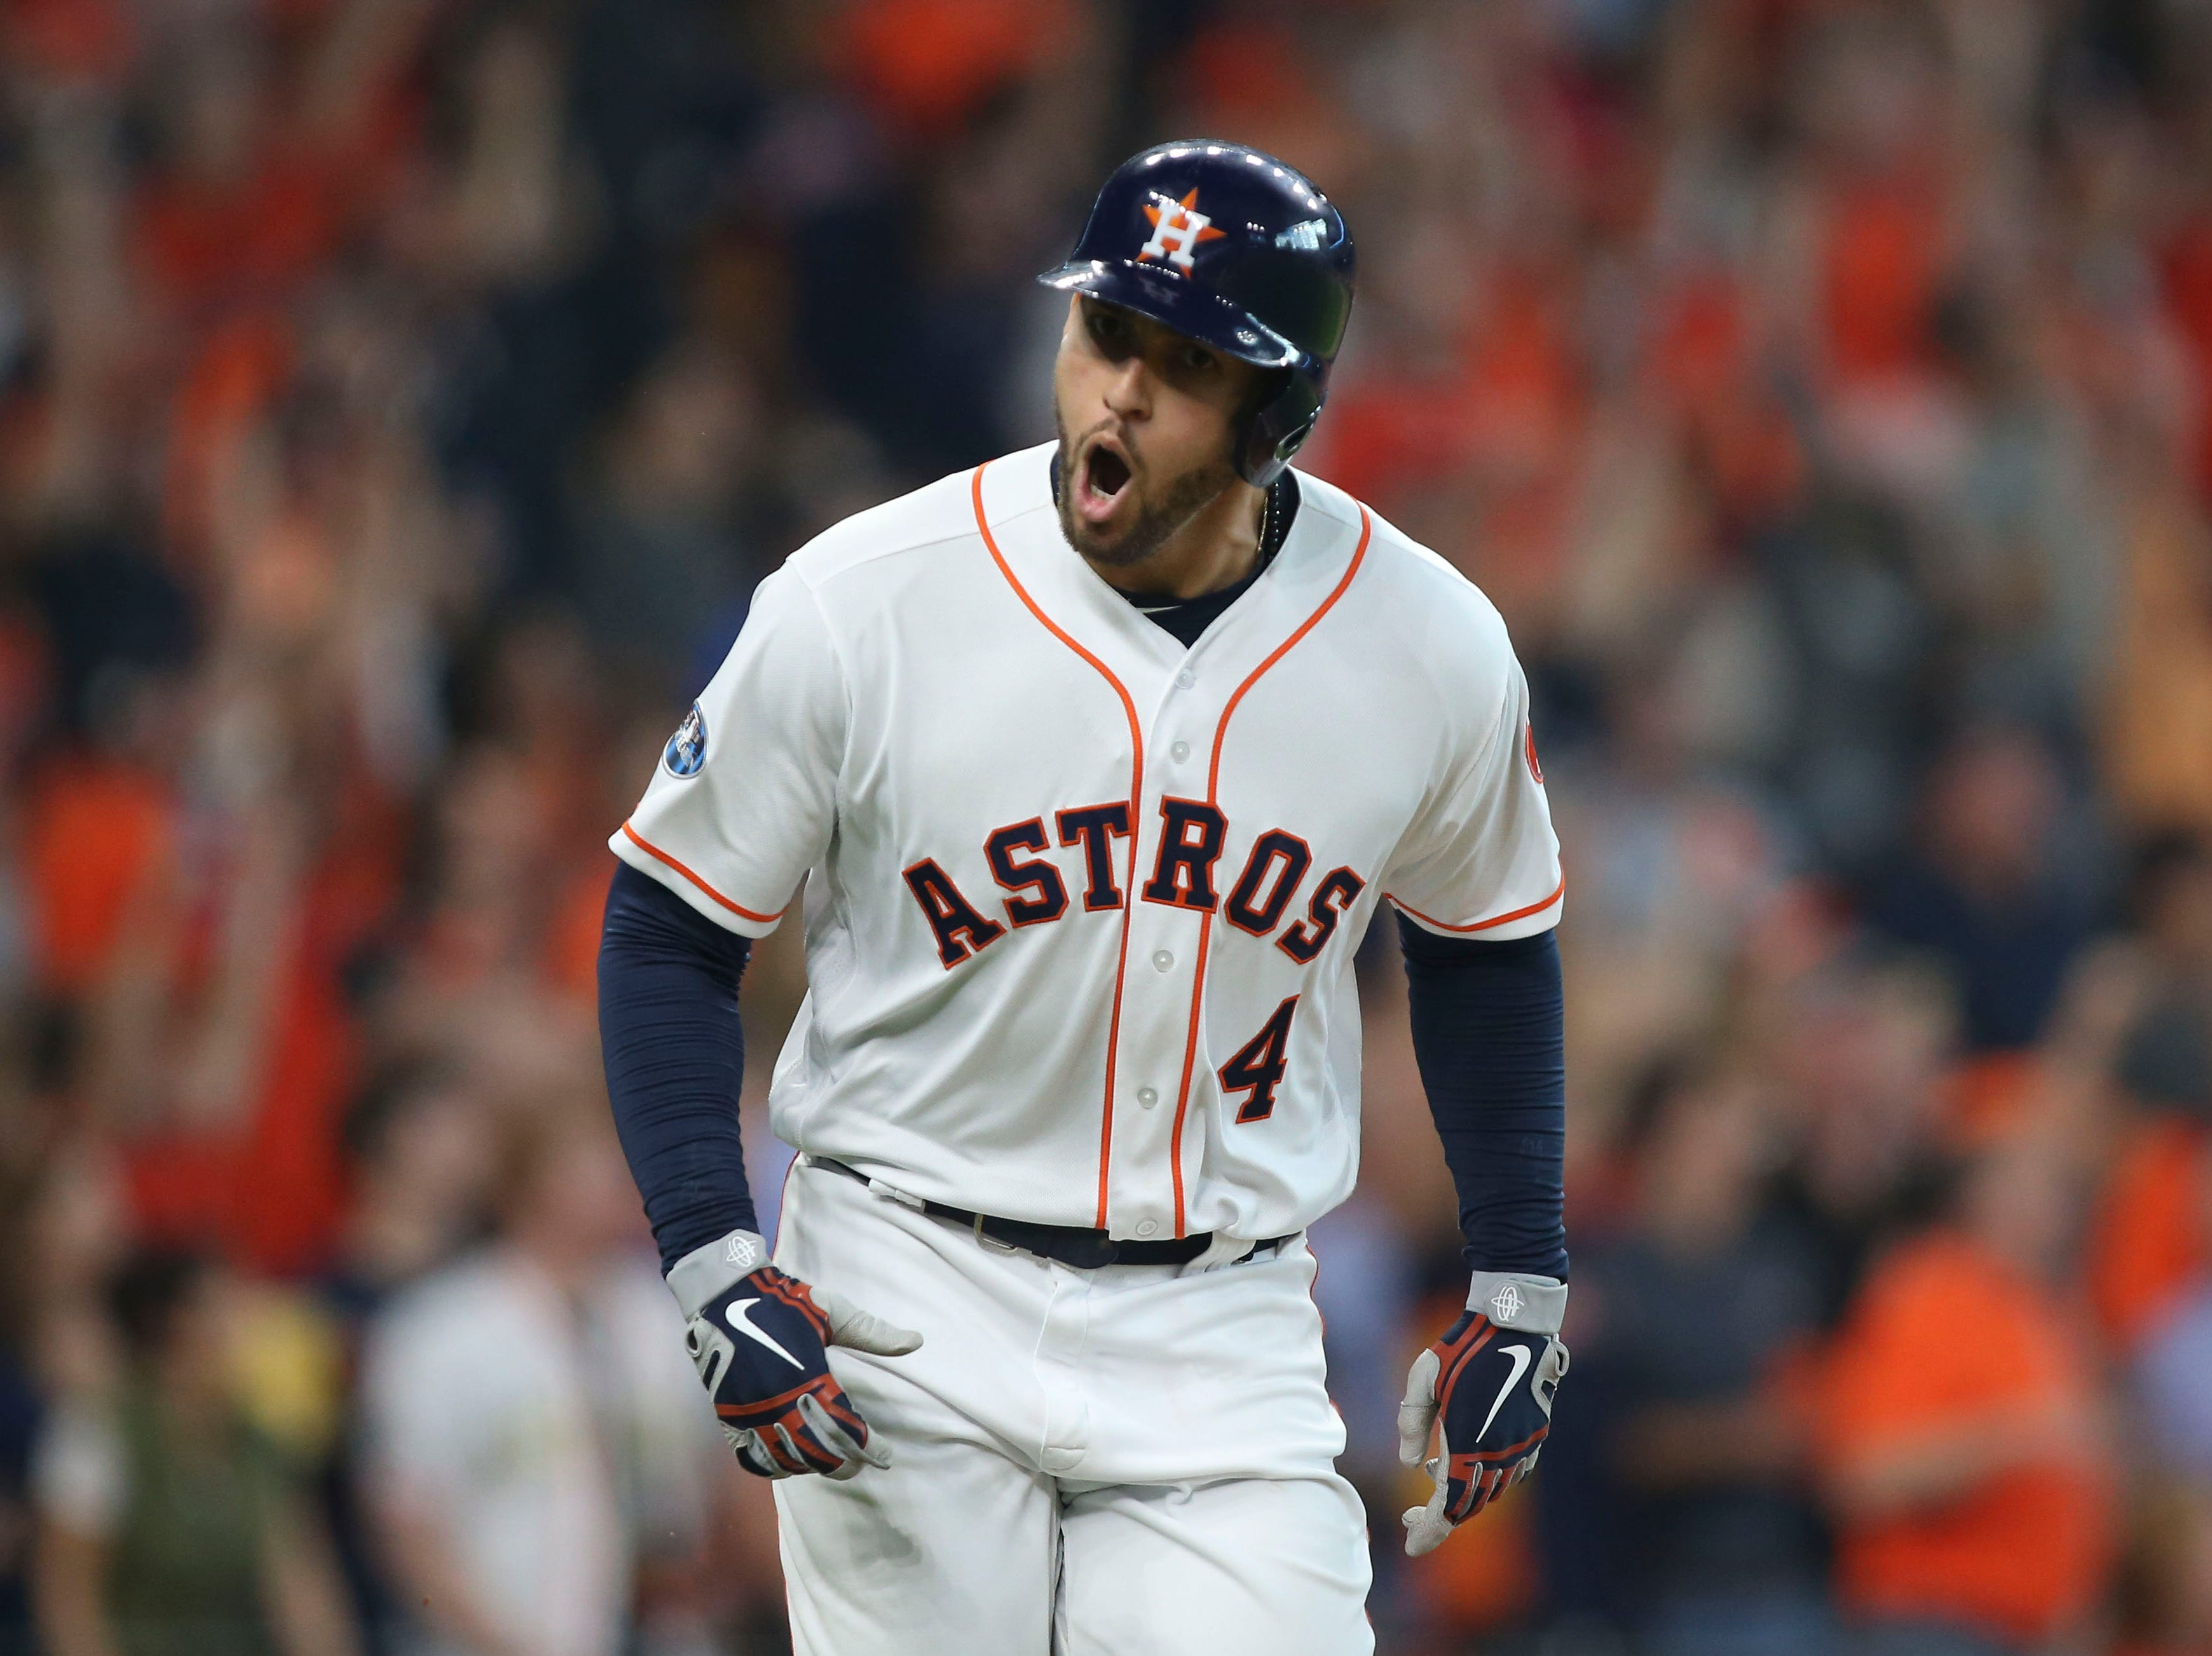 ALDS Game 1: Astros center fielder George Springer celebrates after hitting a solo home run during the fifth inning.